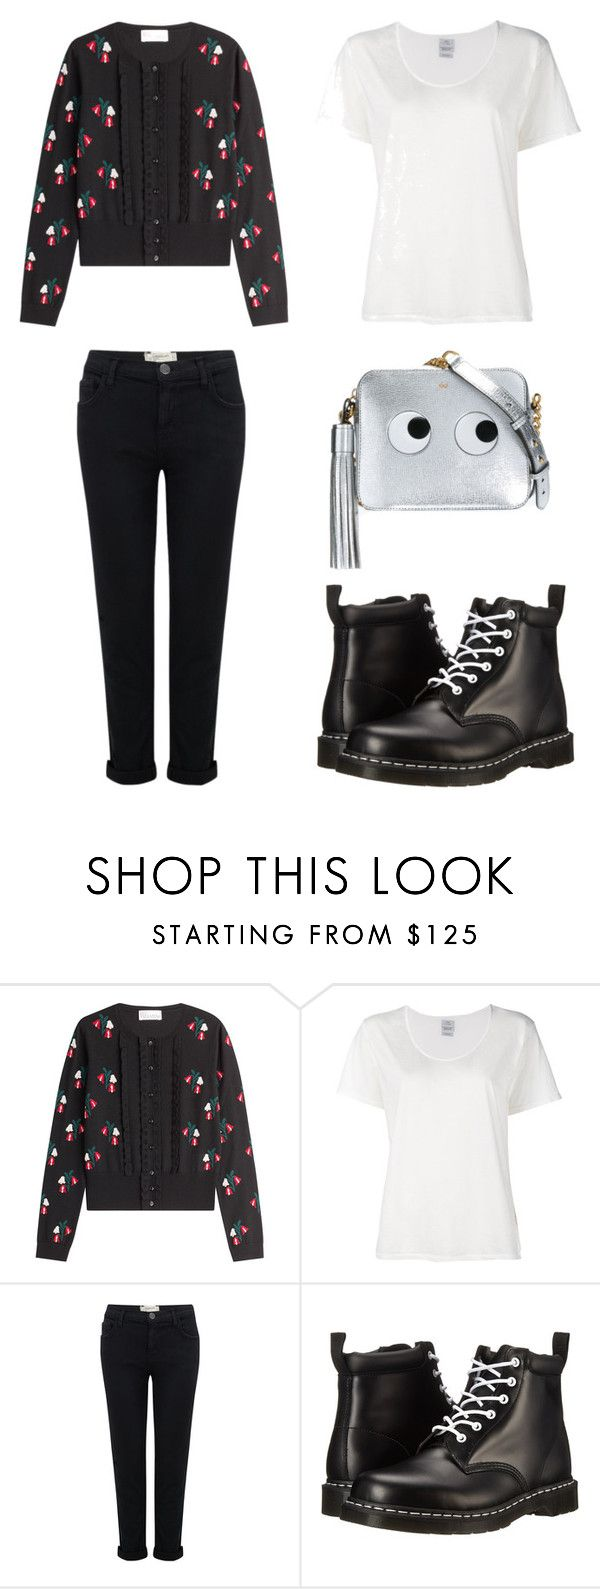 """""""black&white"""" by ferranong on Polyvore featuring RED Valentino, Visvim, Current/Elliott, Dr. Martens and Anya Hindmarch"""